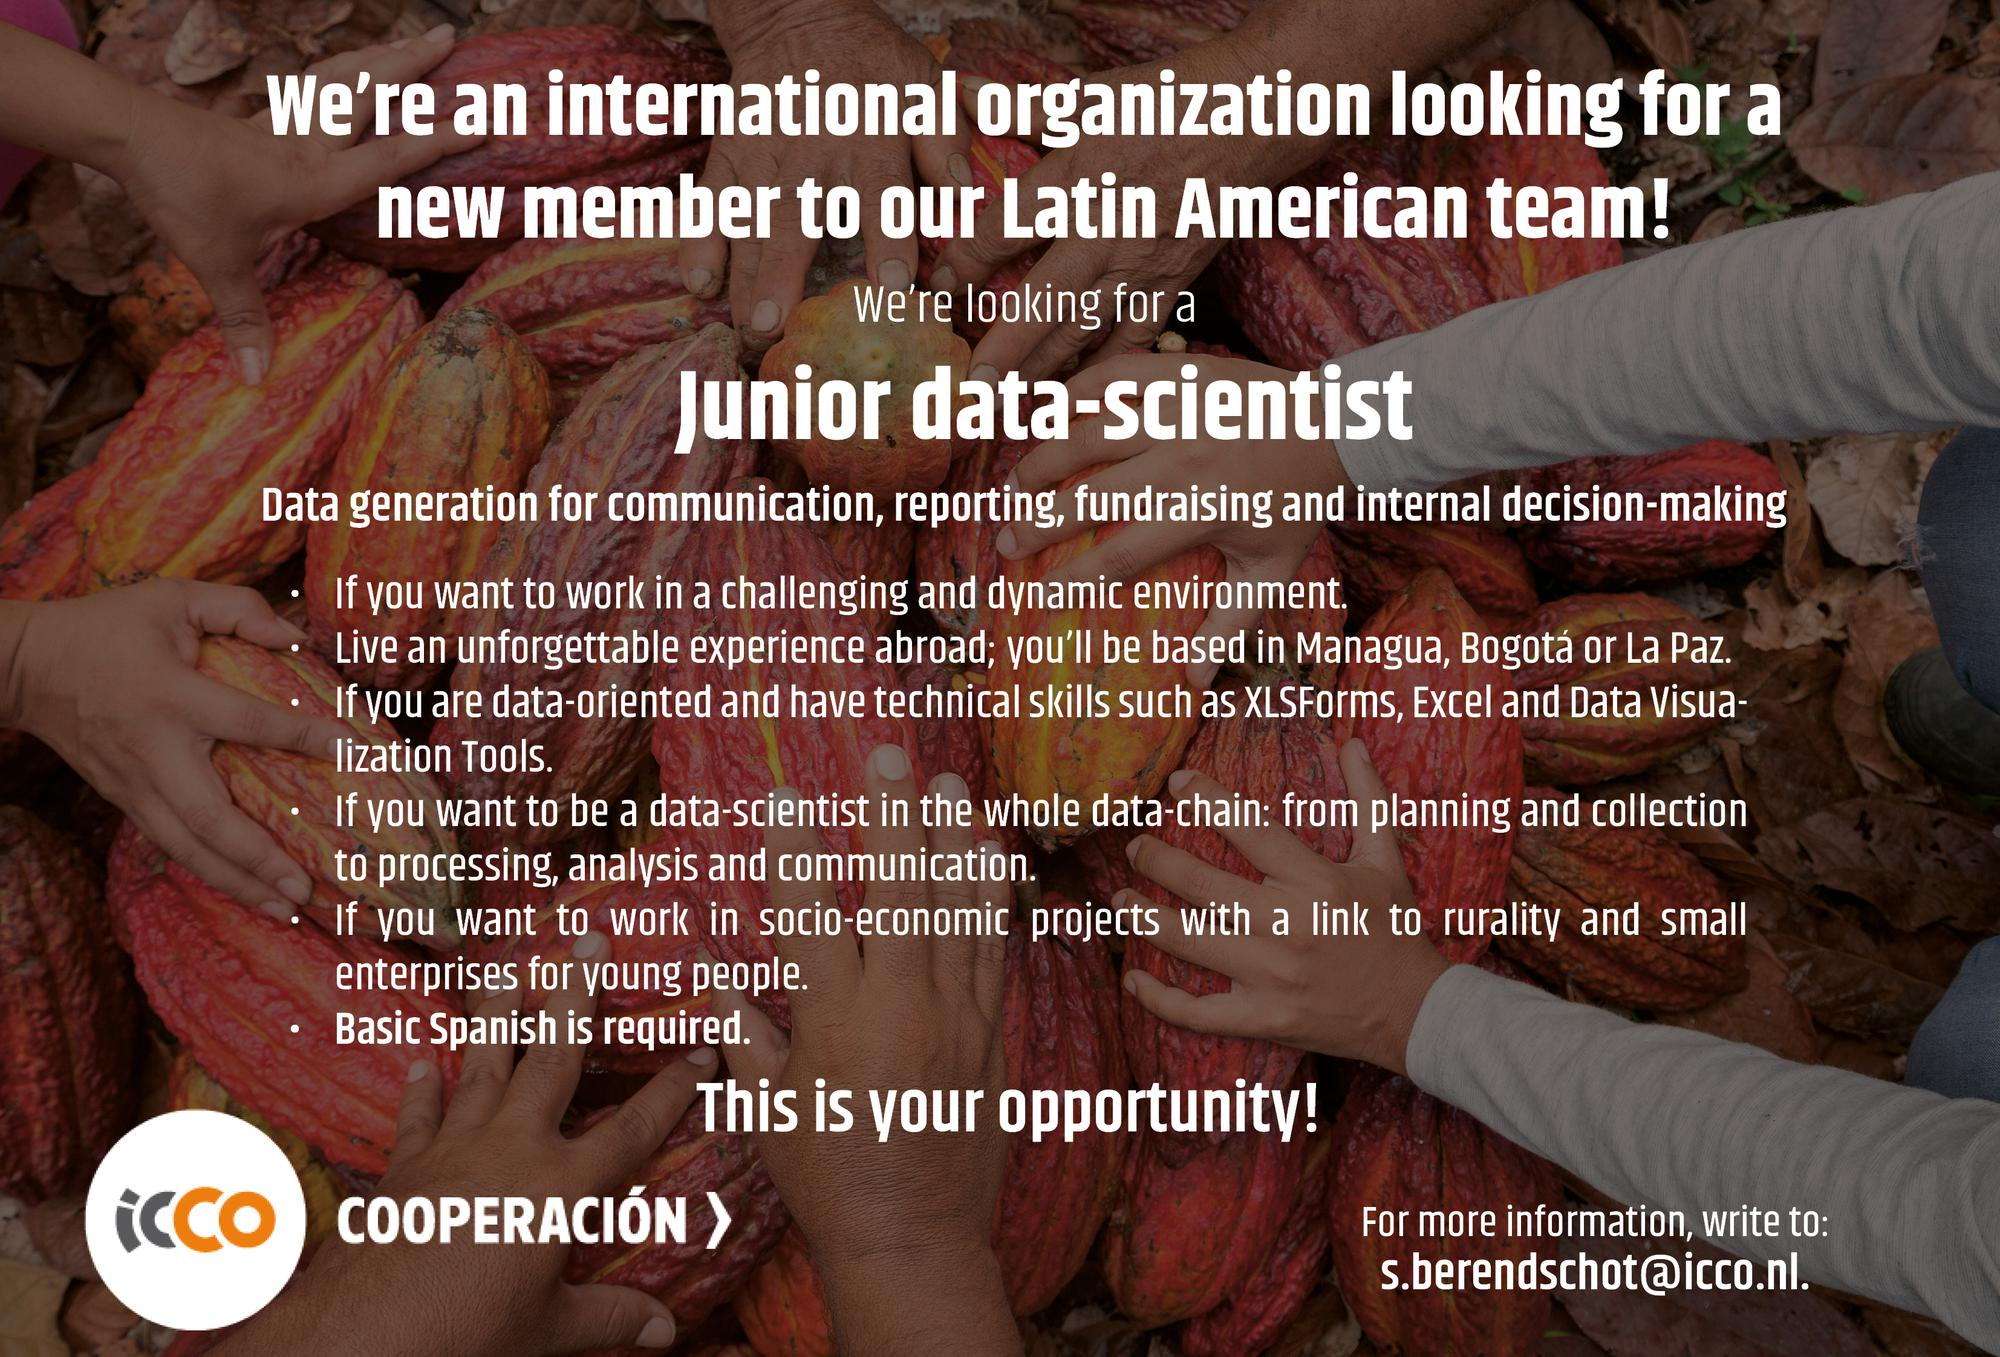 International_NGO_searches_junior_data-scientist_in_Latin-America.jpg